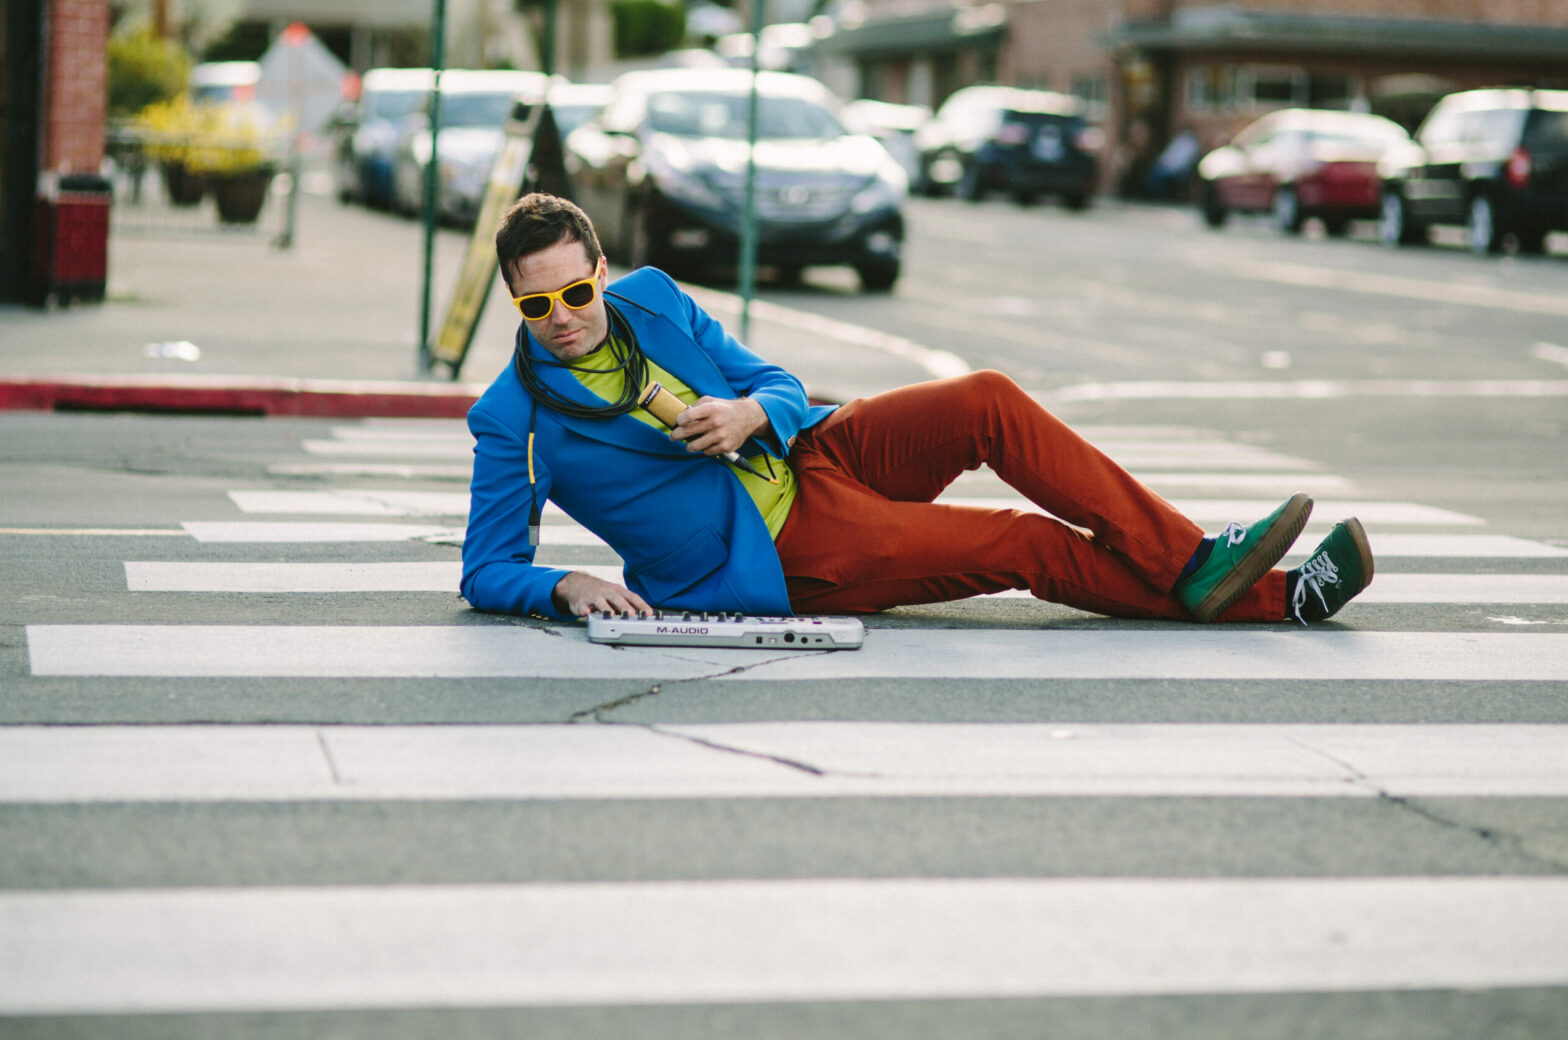 Ford Corl holds a microphone and plays a small keyboard while laying in a crosswalk.